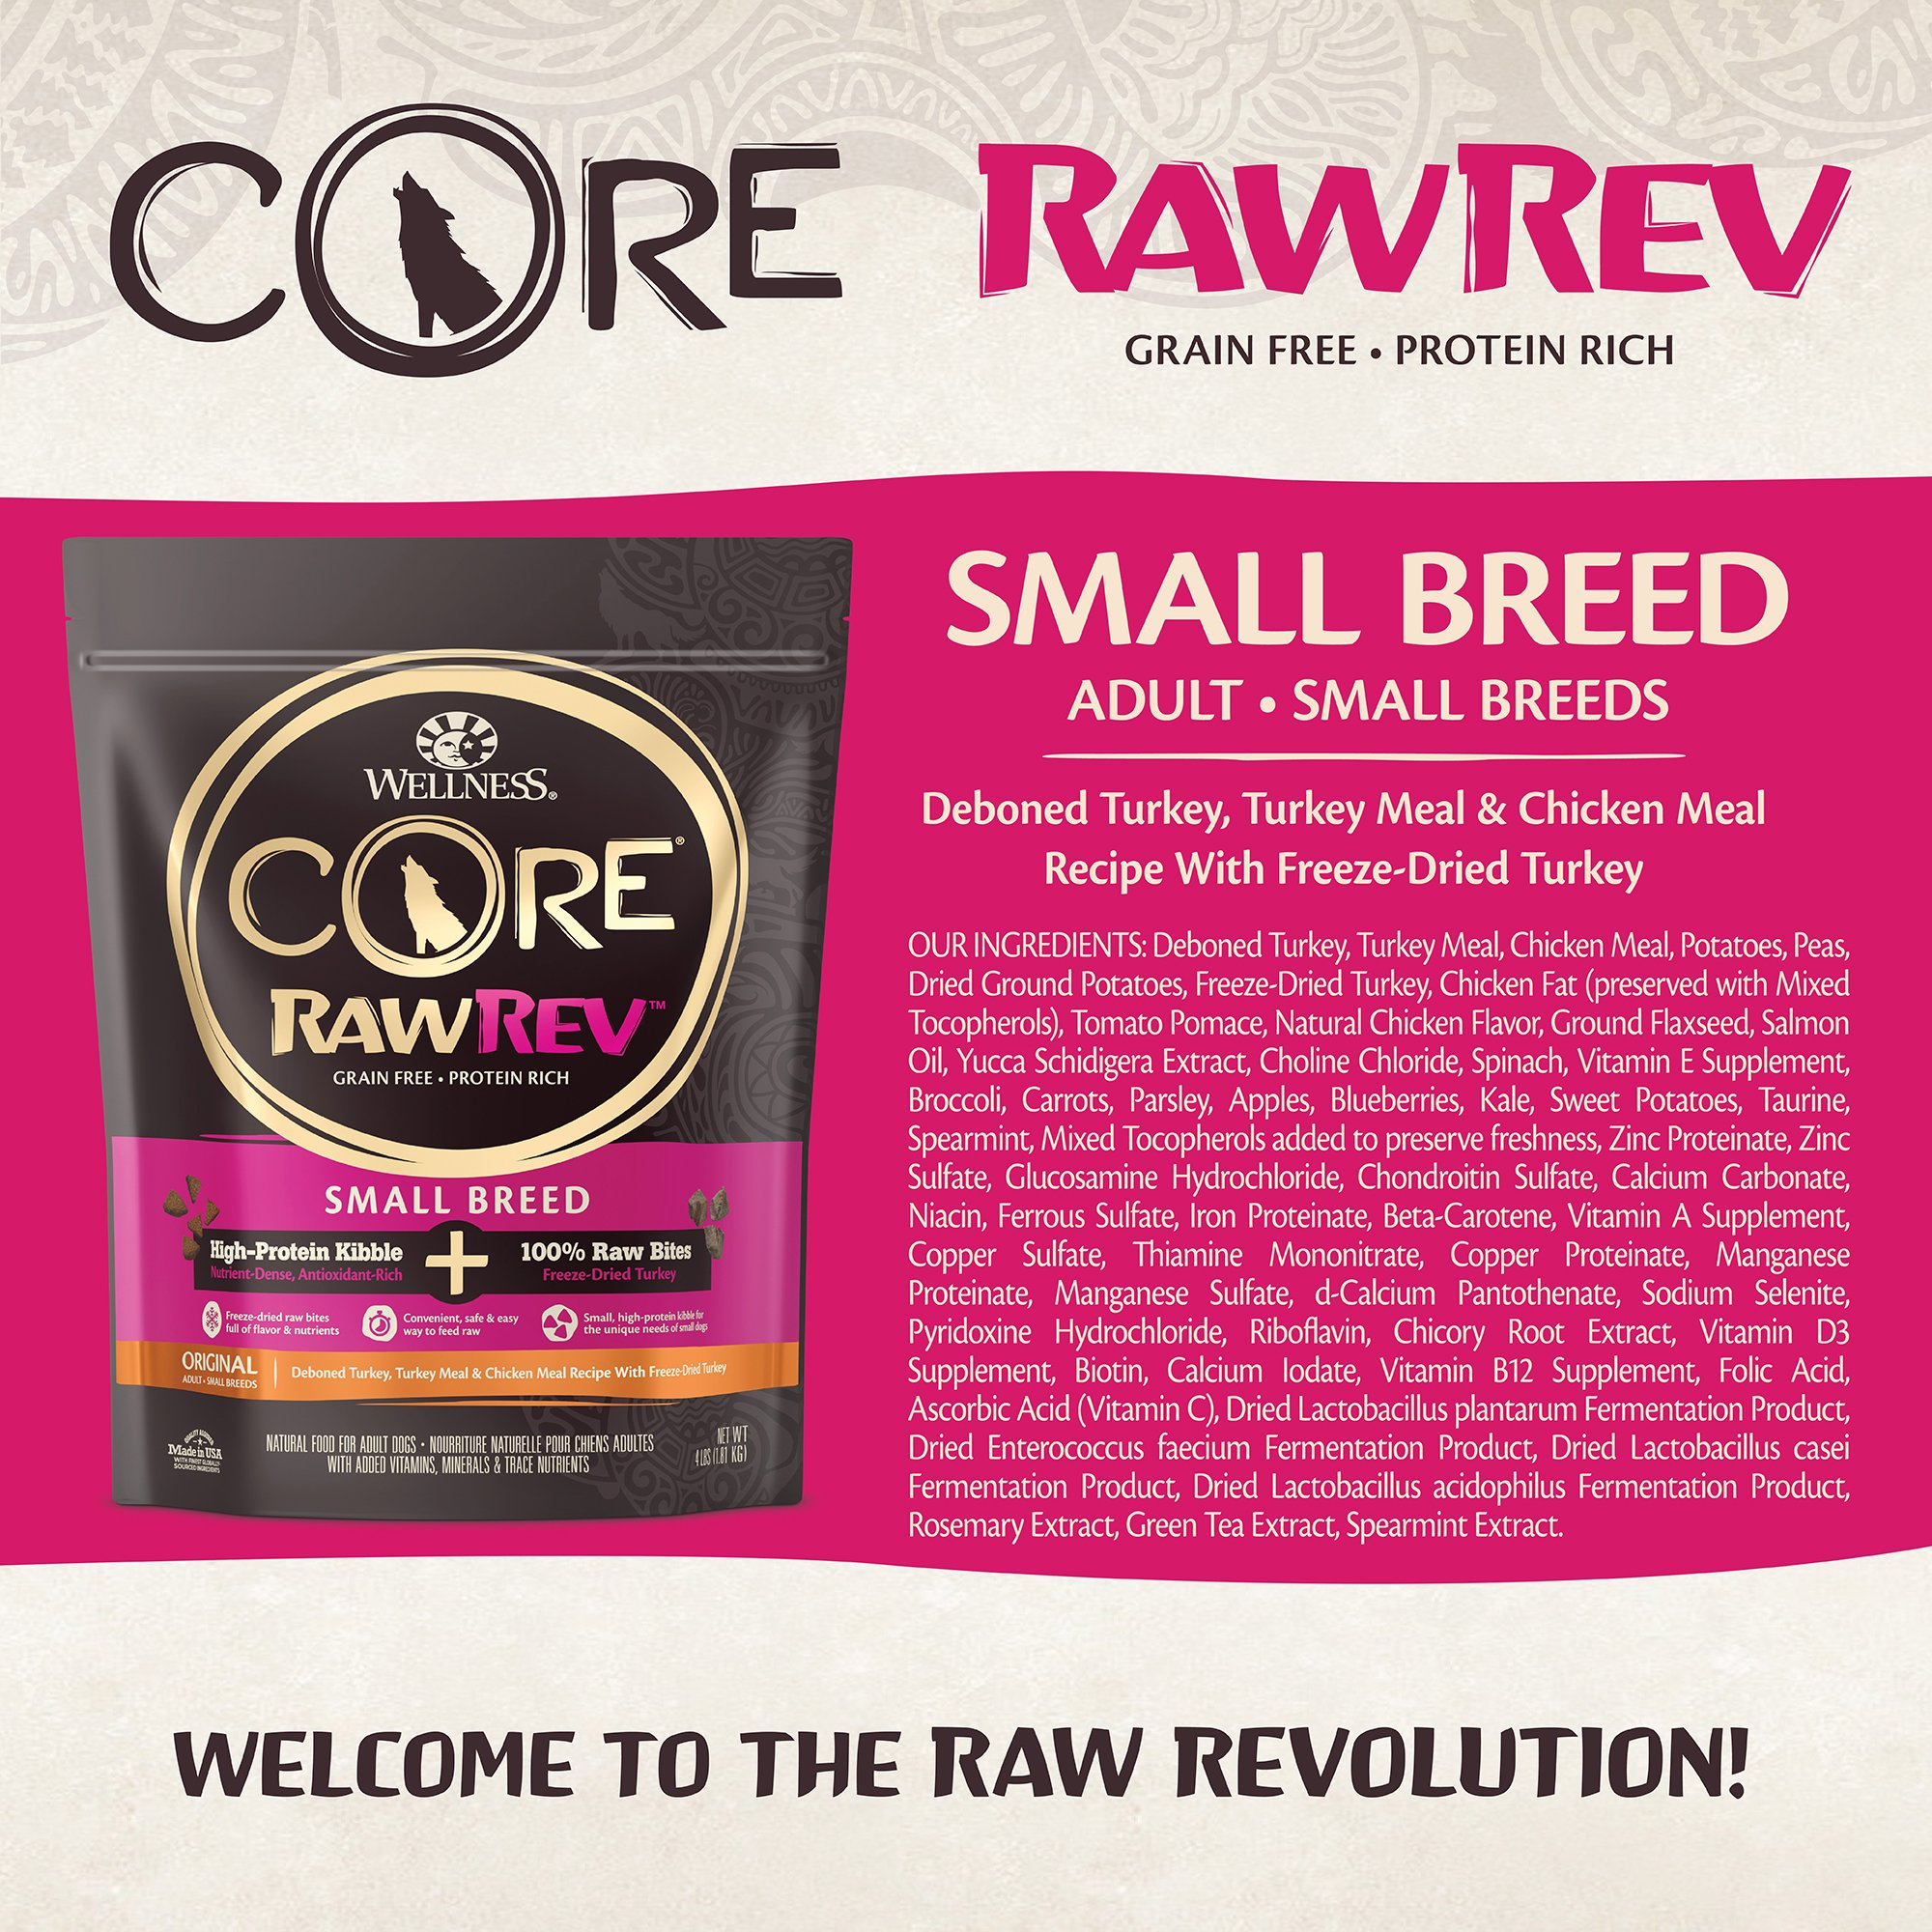 Wellness CORE RawRev Natural Grain Free Small Breed Dry Dog Food, Original Turkey & Chicken with Freeze Dried Turkey, 10-Pound Bag by Wellness Natural Pet Food (Image #3)